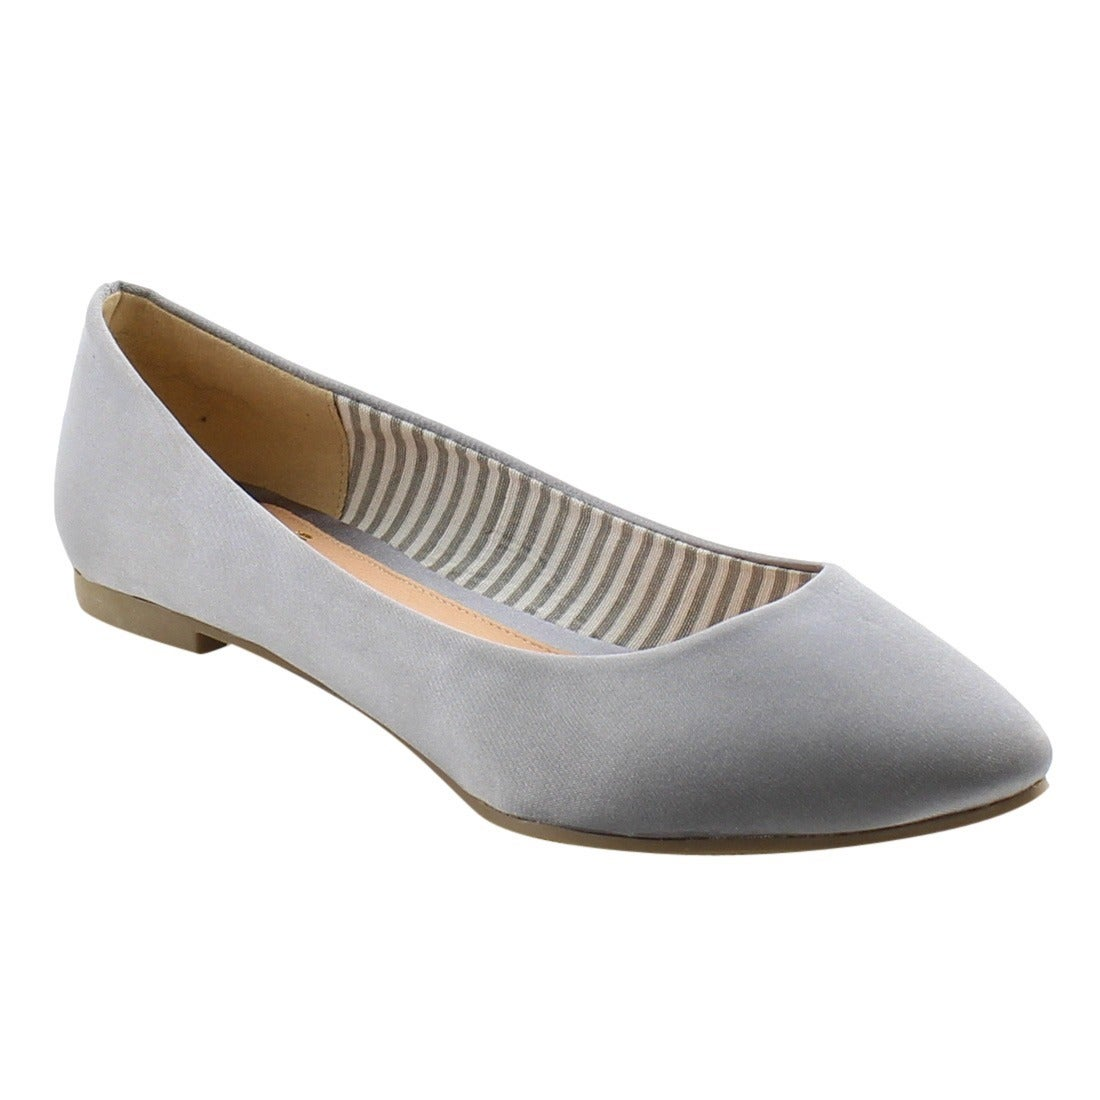 2842d32afa Shop Betani Women s Casual Solid Ballet Flats - Free Shipping On Orders  Over  45 - Overstock - 12020324